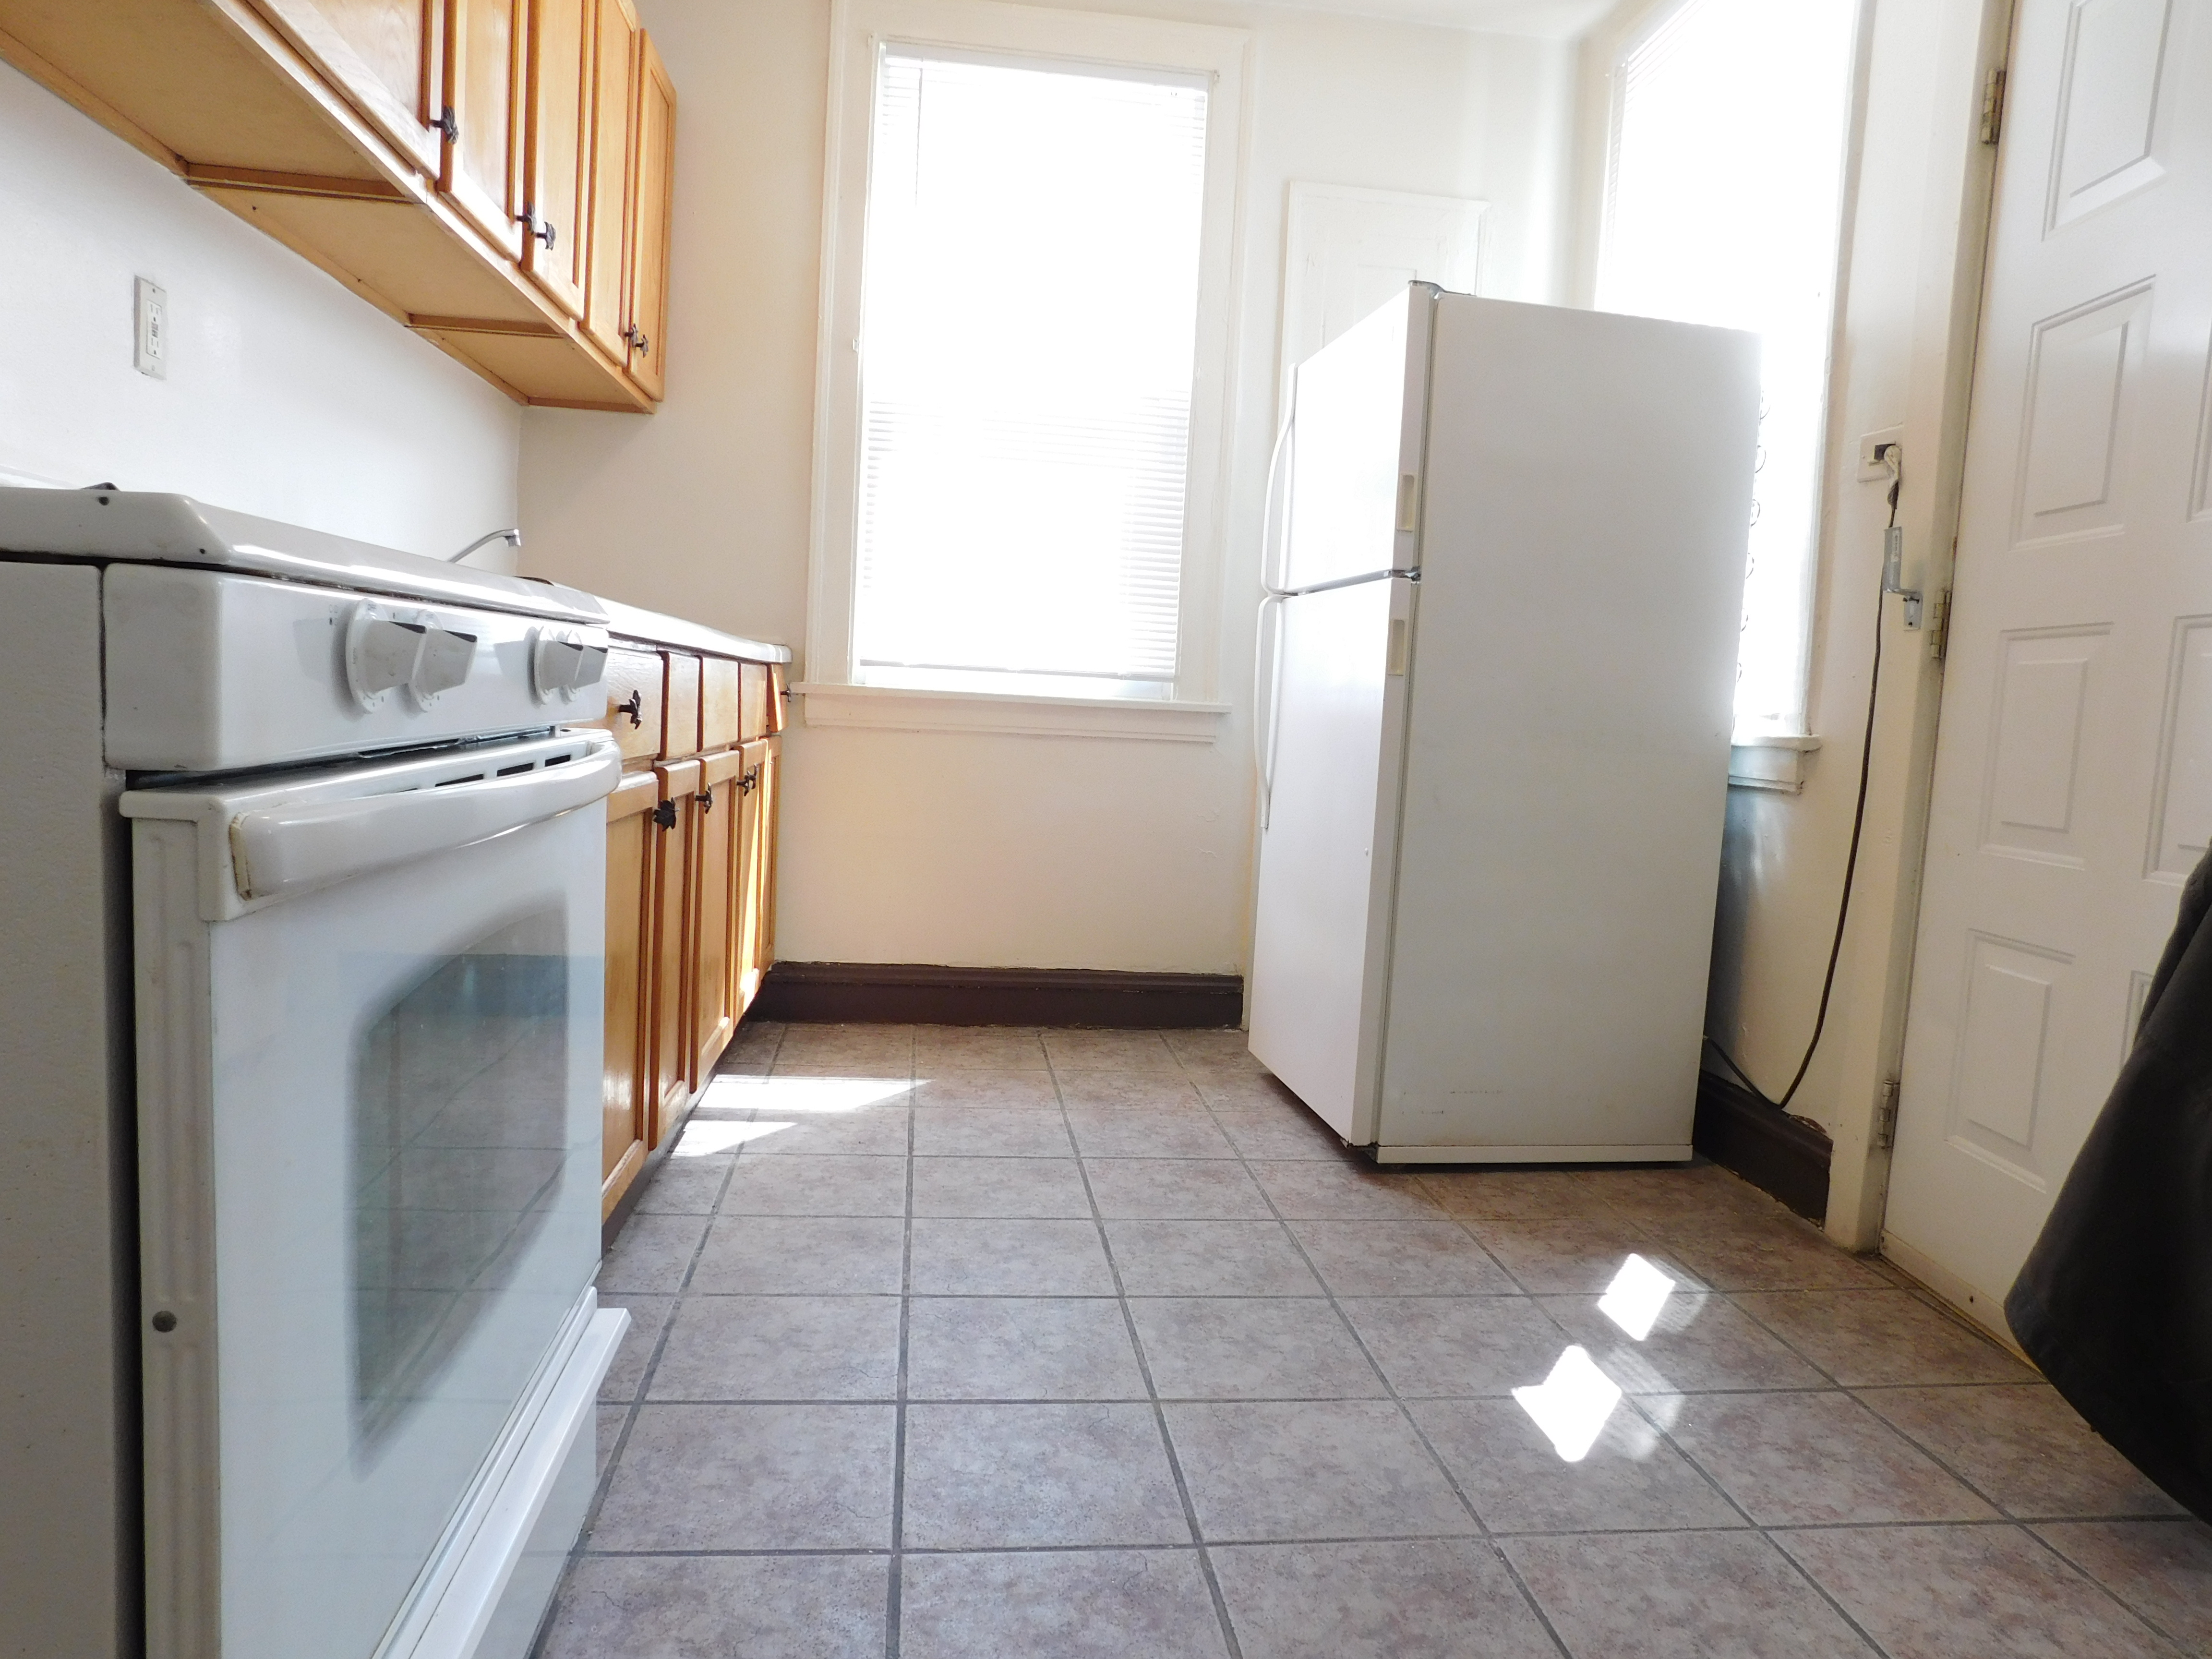 Kitchen of 2 bedroom for rent in Chicago west side